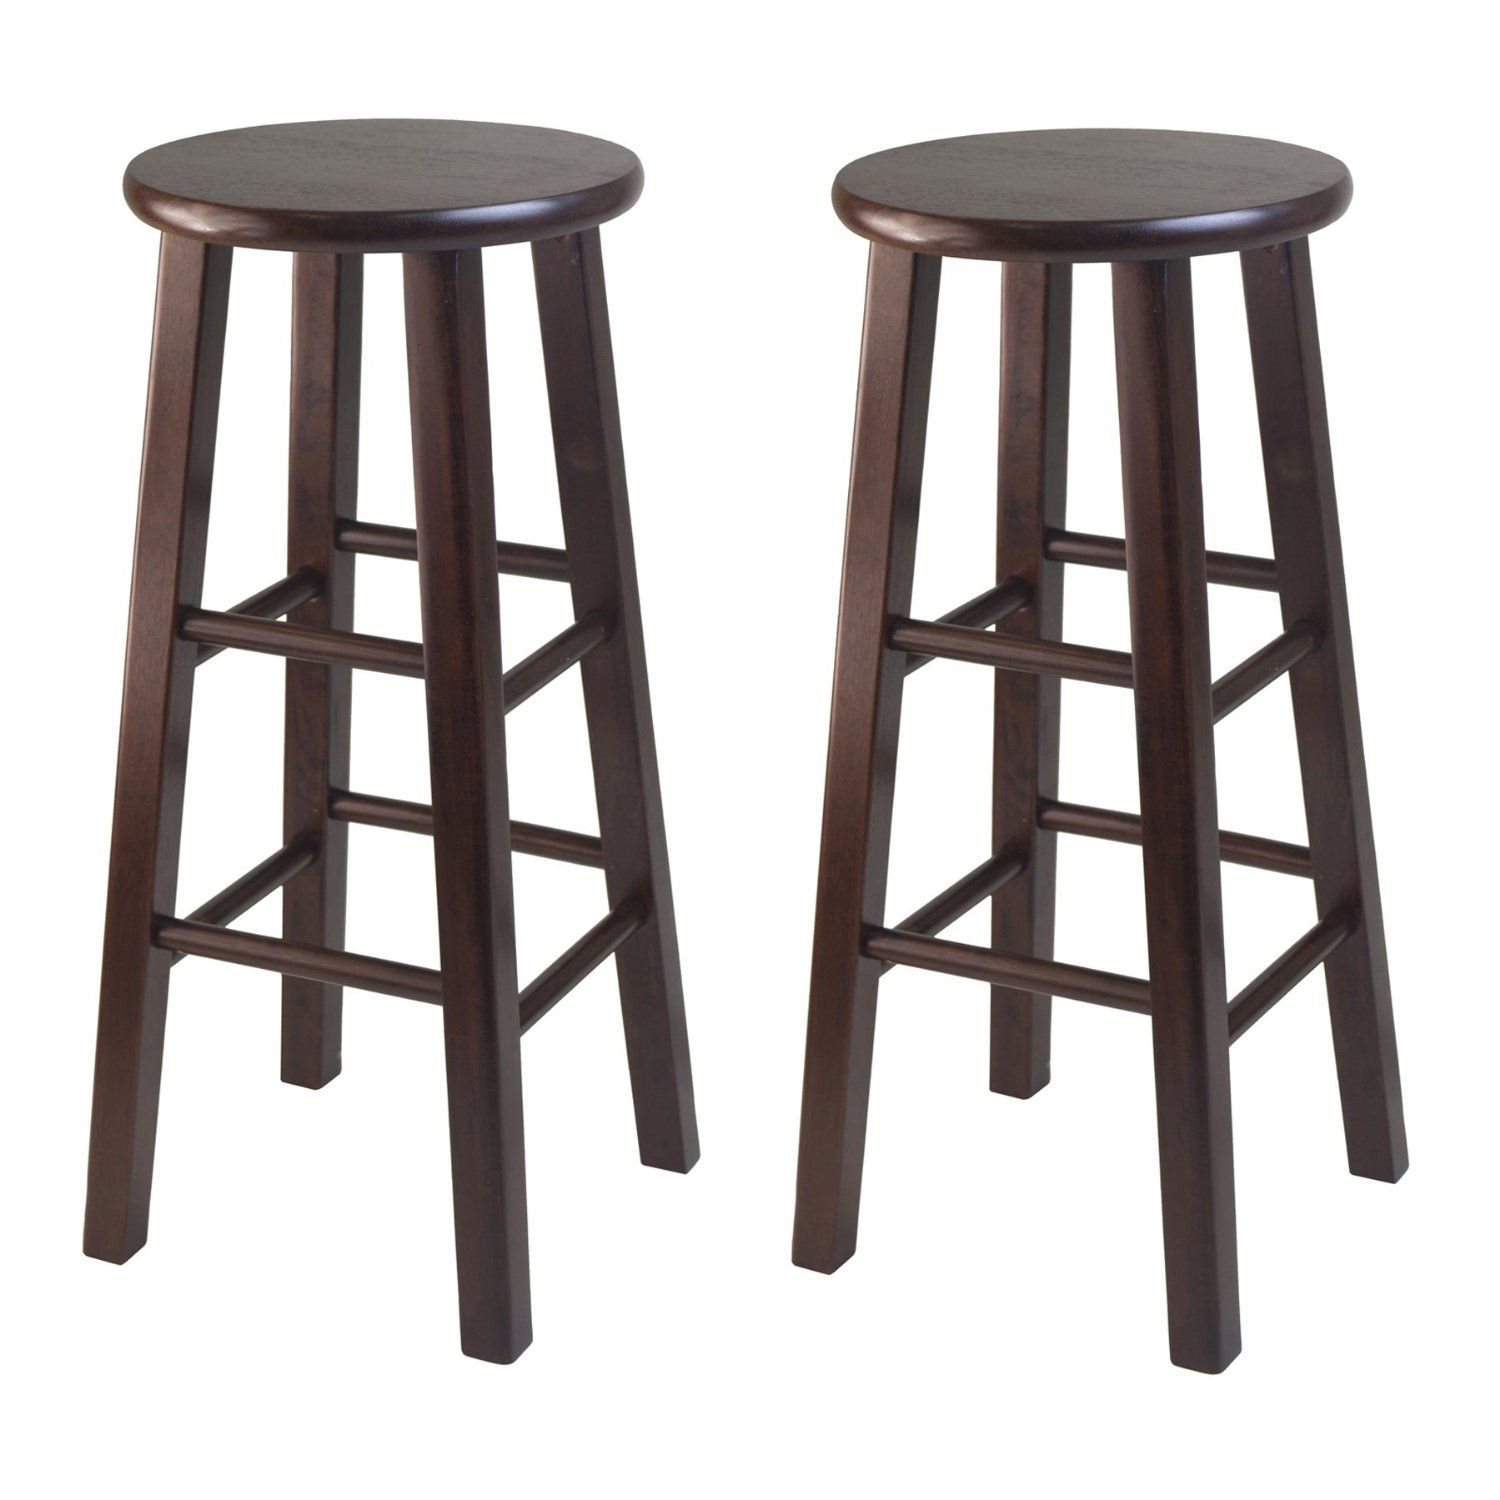 Furniture Traditional Dark Wooden Kitchen Bar Stool With Rounded Seat Extra  Tall Bar Stools